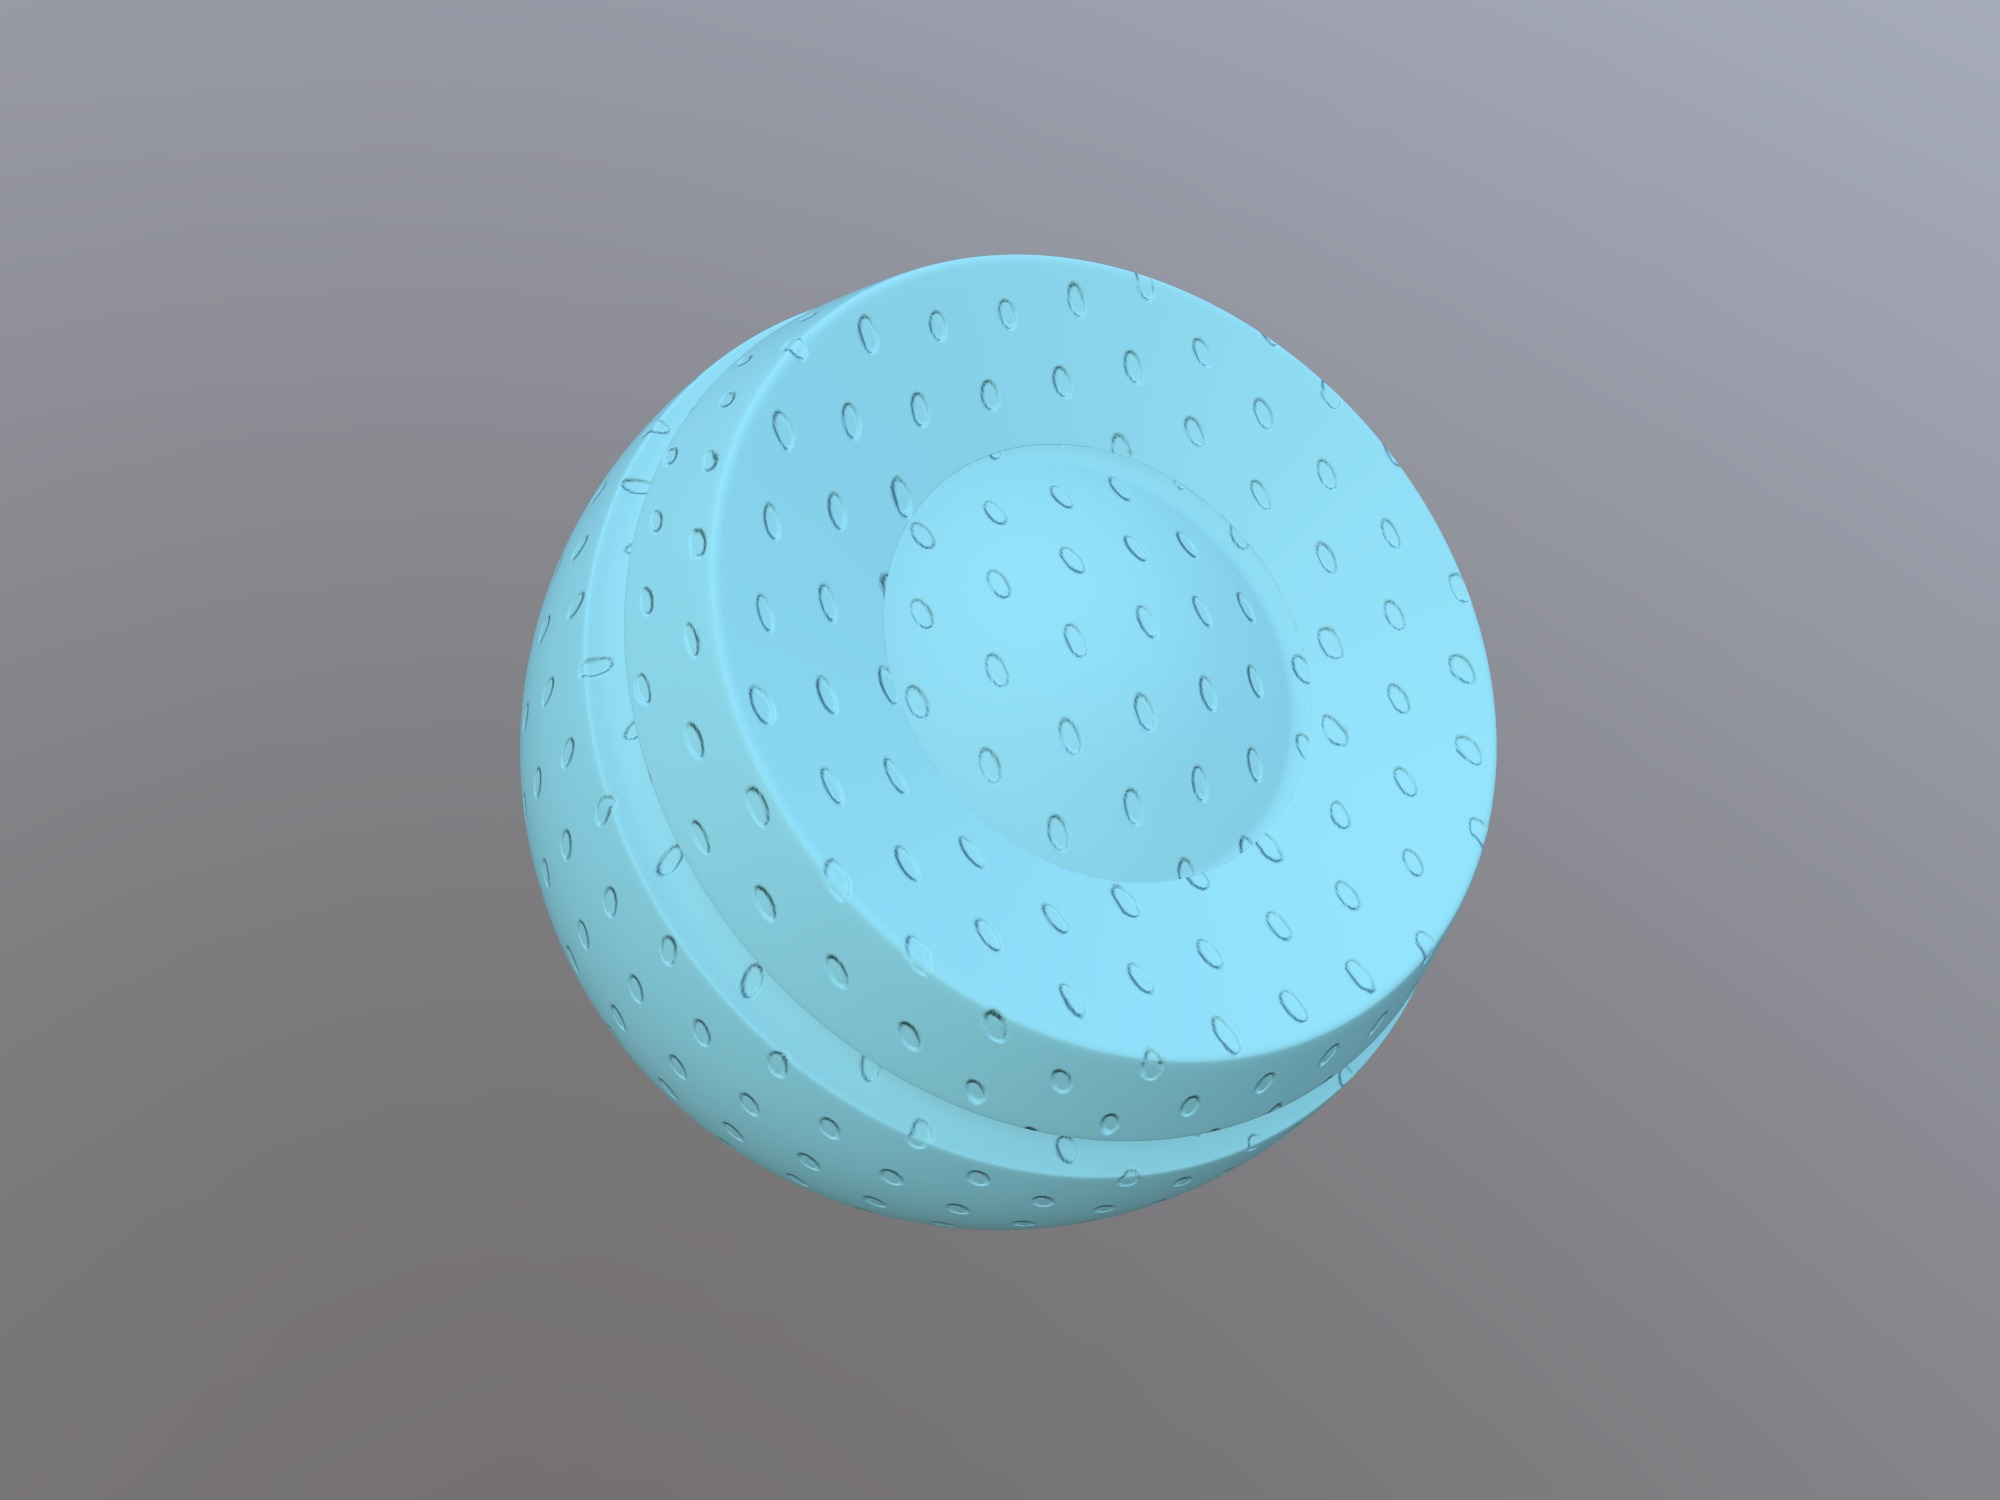 Dot Pattern - 3D design by Vectary Materials on Nov 8, 2018